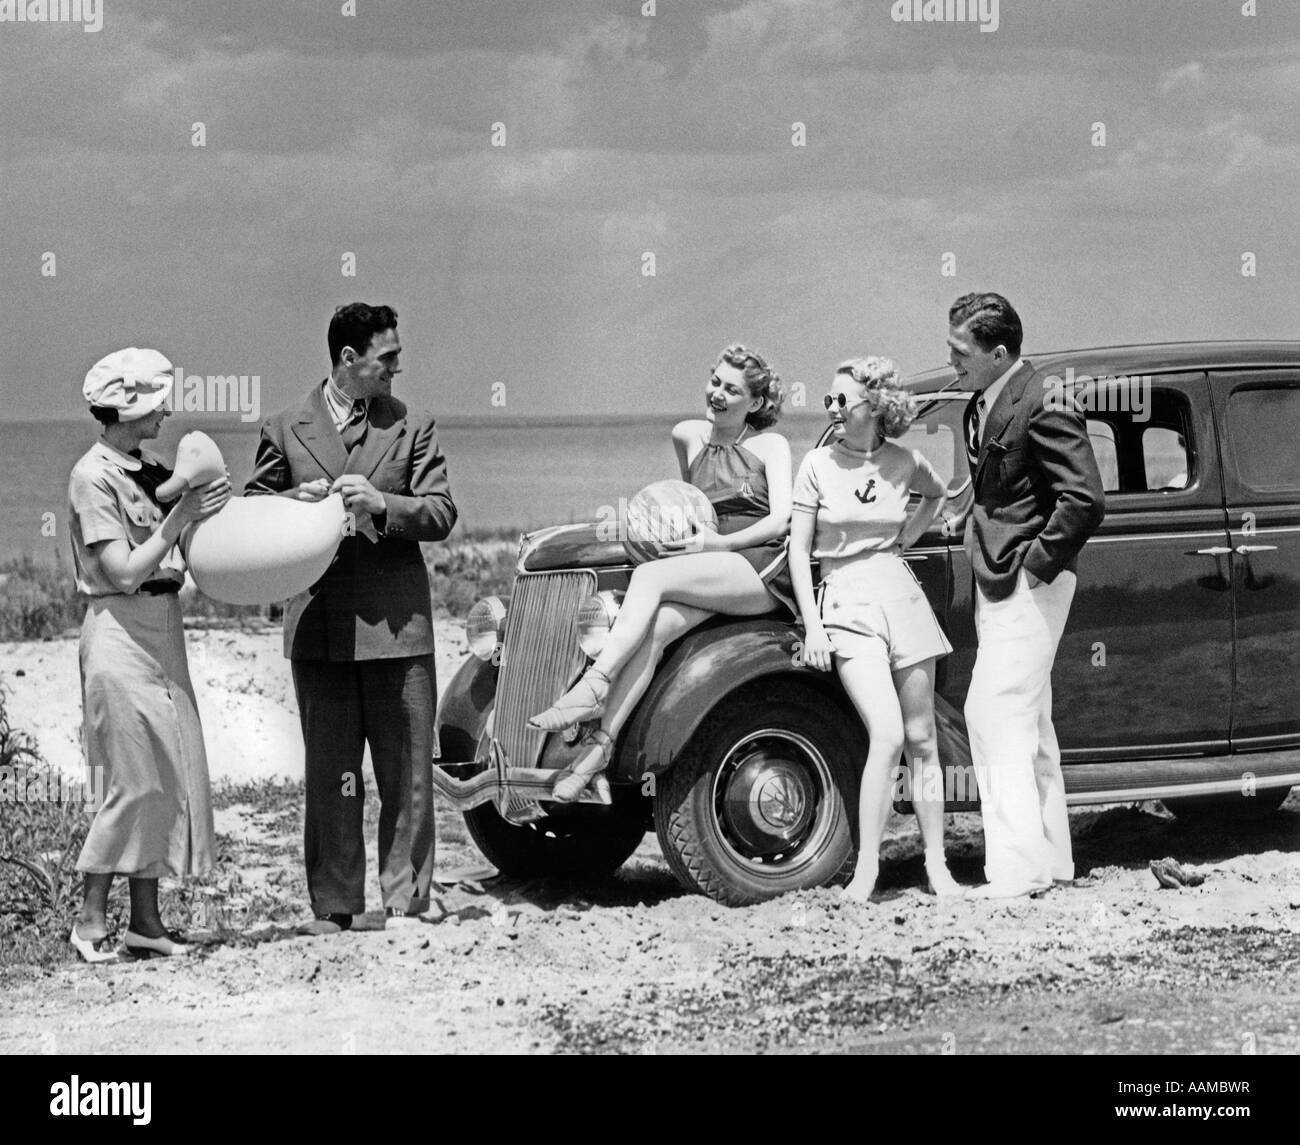 1930s GROUP OF FIVE MEN & WOMEN AT 1936 FORD V-8 PARKED ALONG SHORE PLAYING WITH INFLATABLE BEACH TOYS - Stock Image